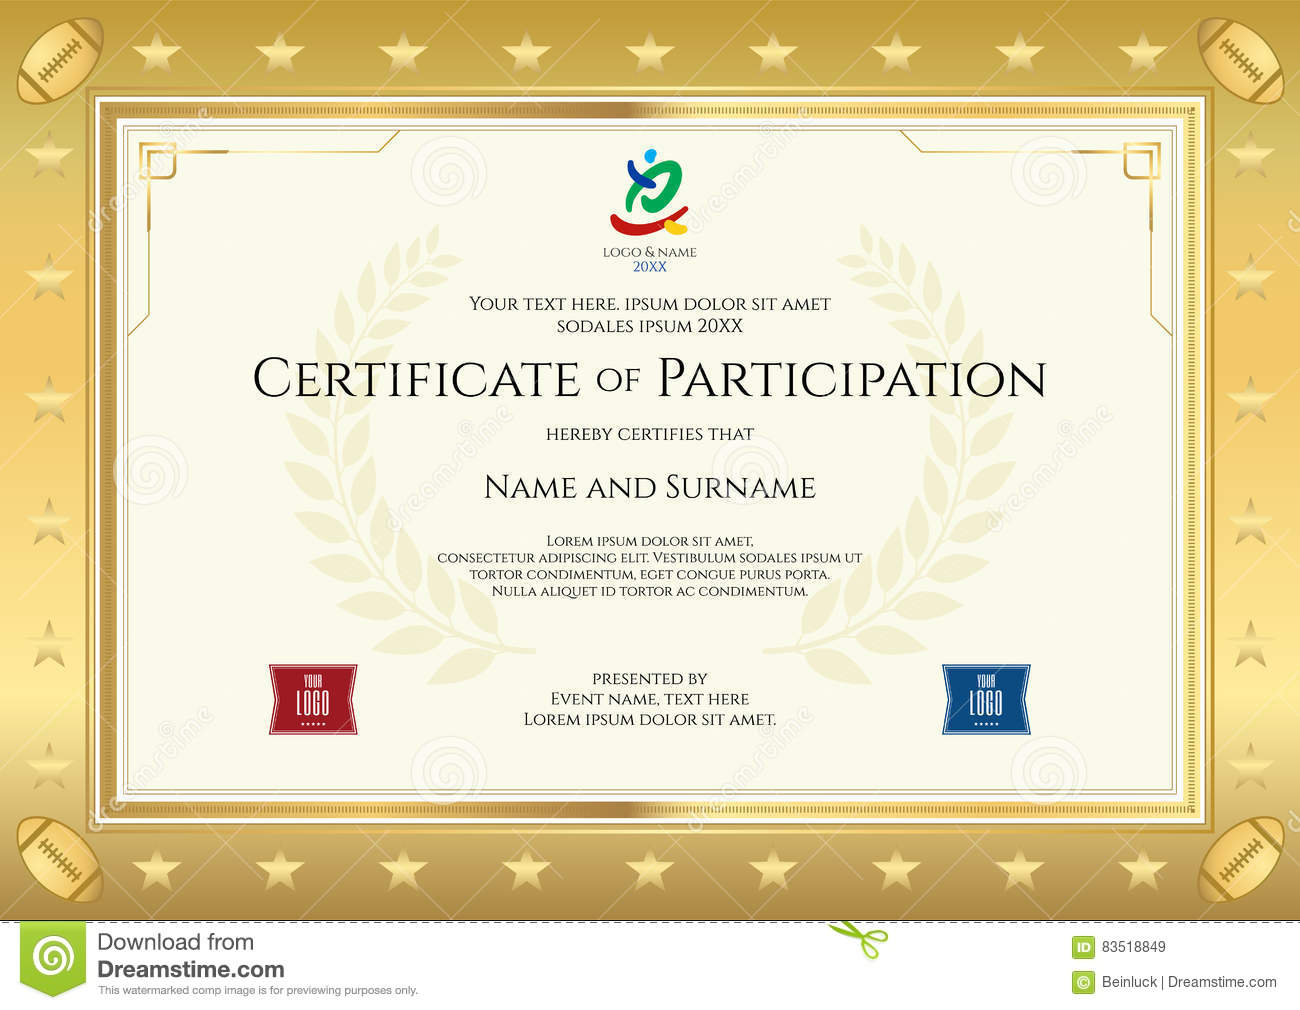 Felicitation certificate template images templates example free sports certificates templates free download images templates free sports certificate templates images templates example free sports yadclub Images